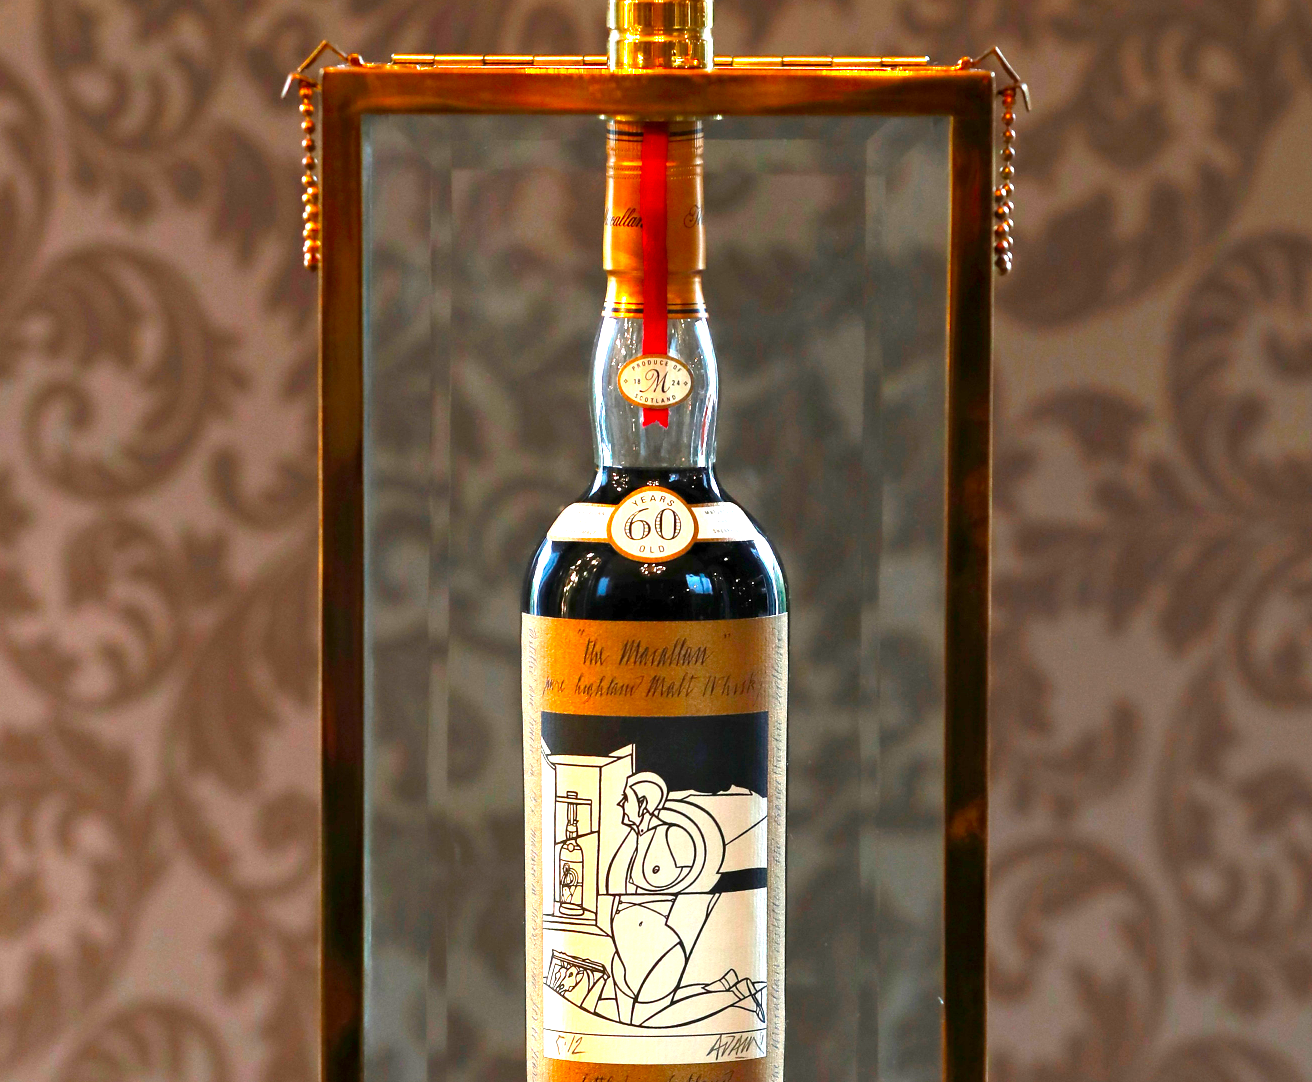 A bottle of 'The Holy Grail of Whisky' sold for a record $1.1 million